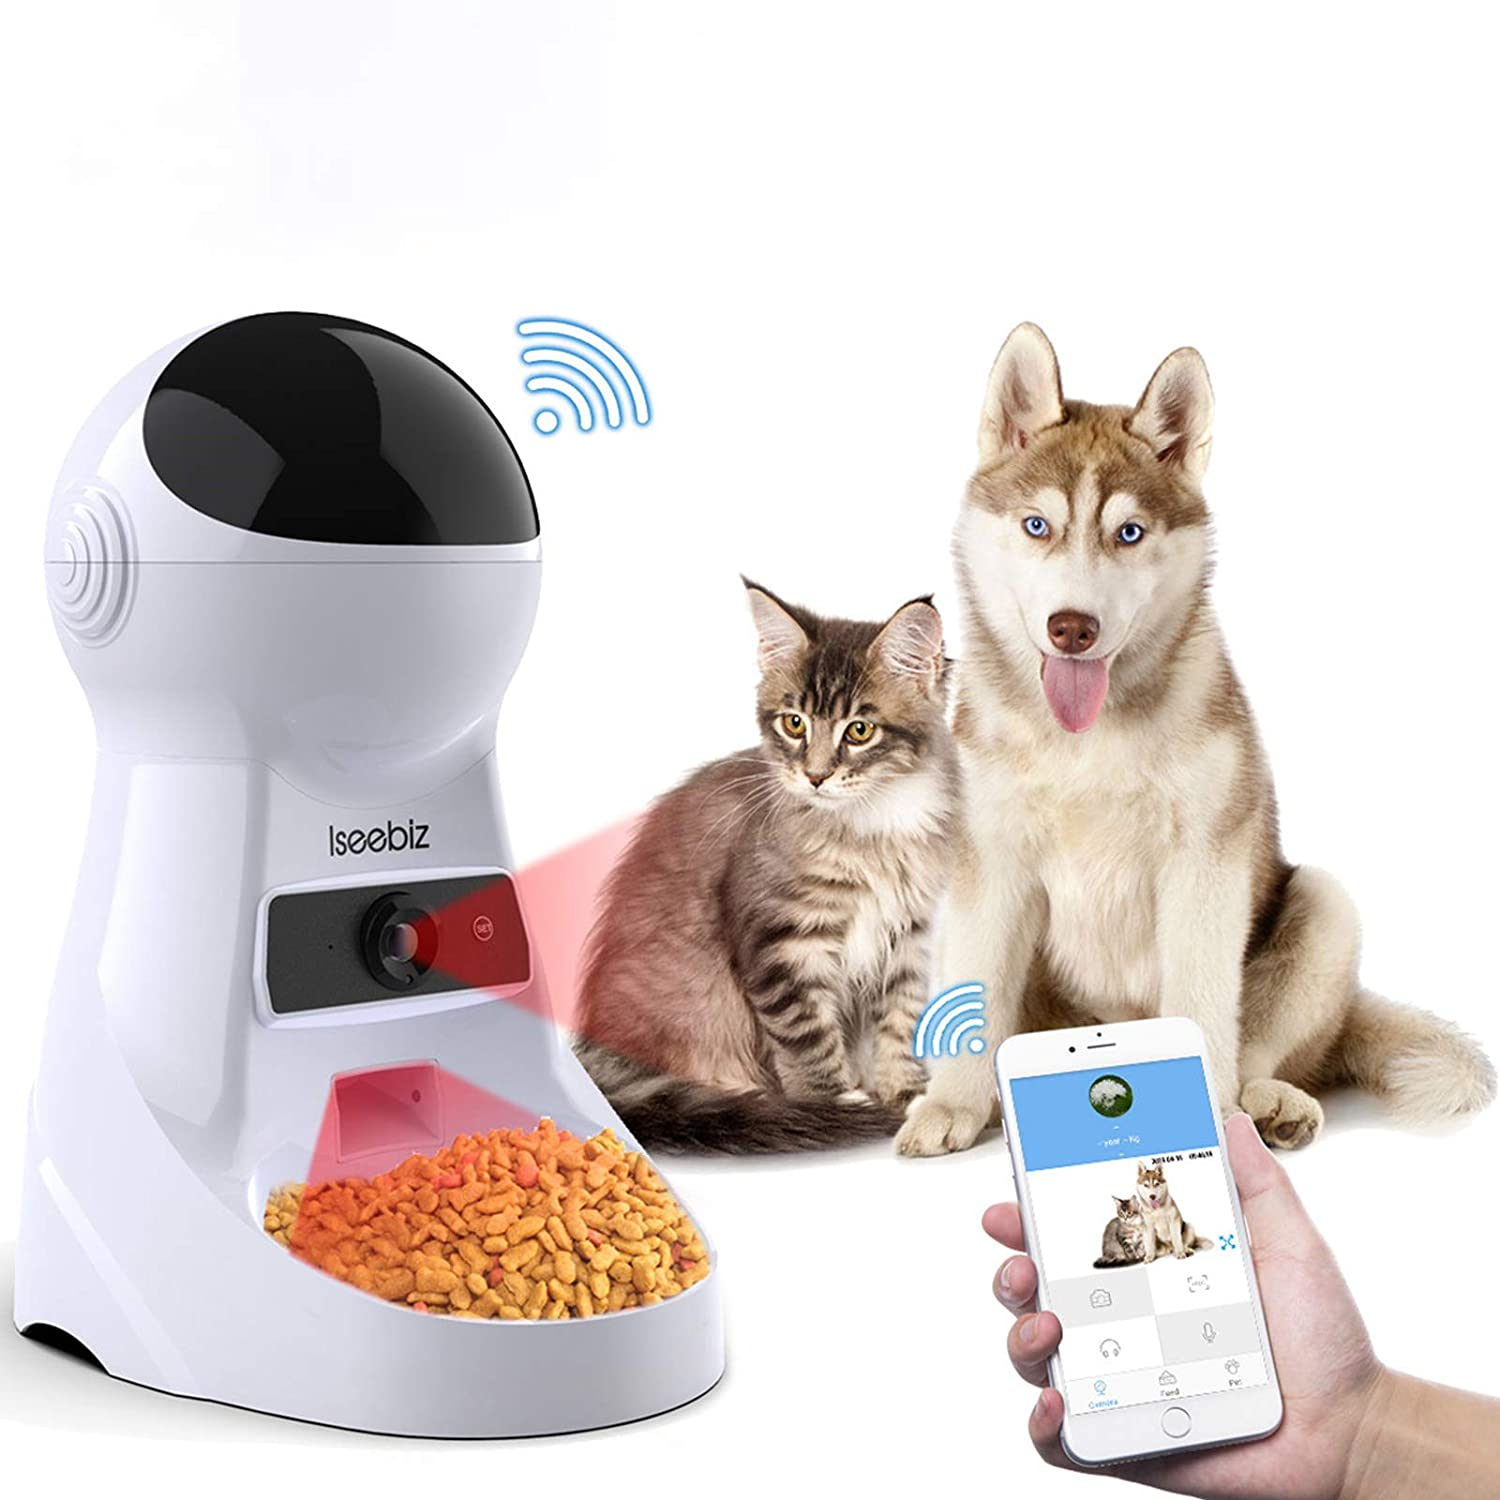 Iseebiz Automatic Cat Feeder Pet Feeder 3L Food Dispenser with Wi-Fi Camera Time and Meal Size Programmable Recorder Up to 6 Meals A Day for Medium and Large Cats and Dogs…